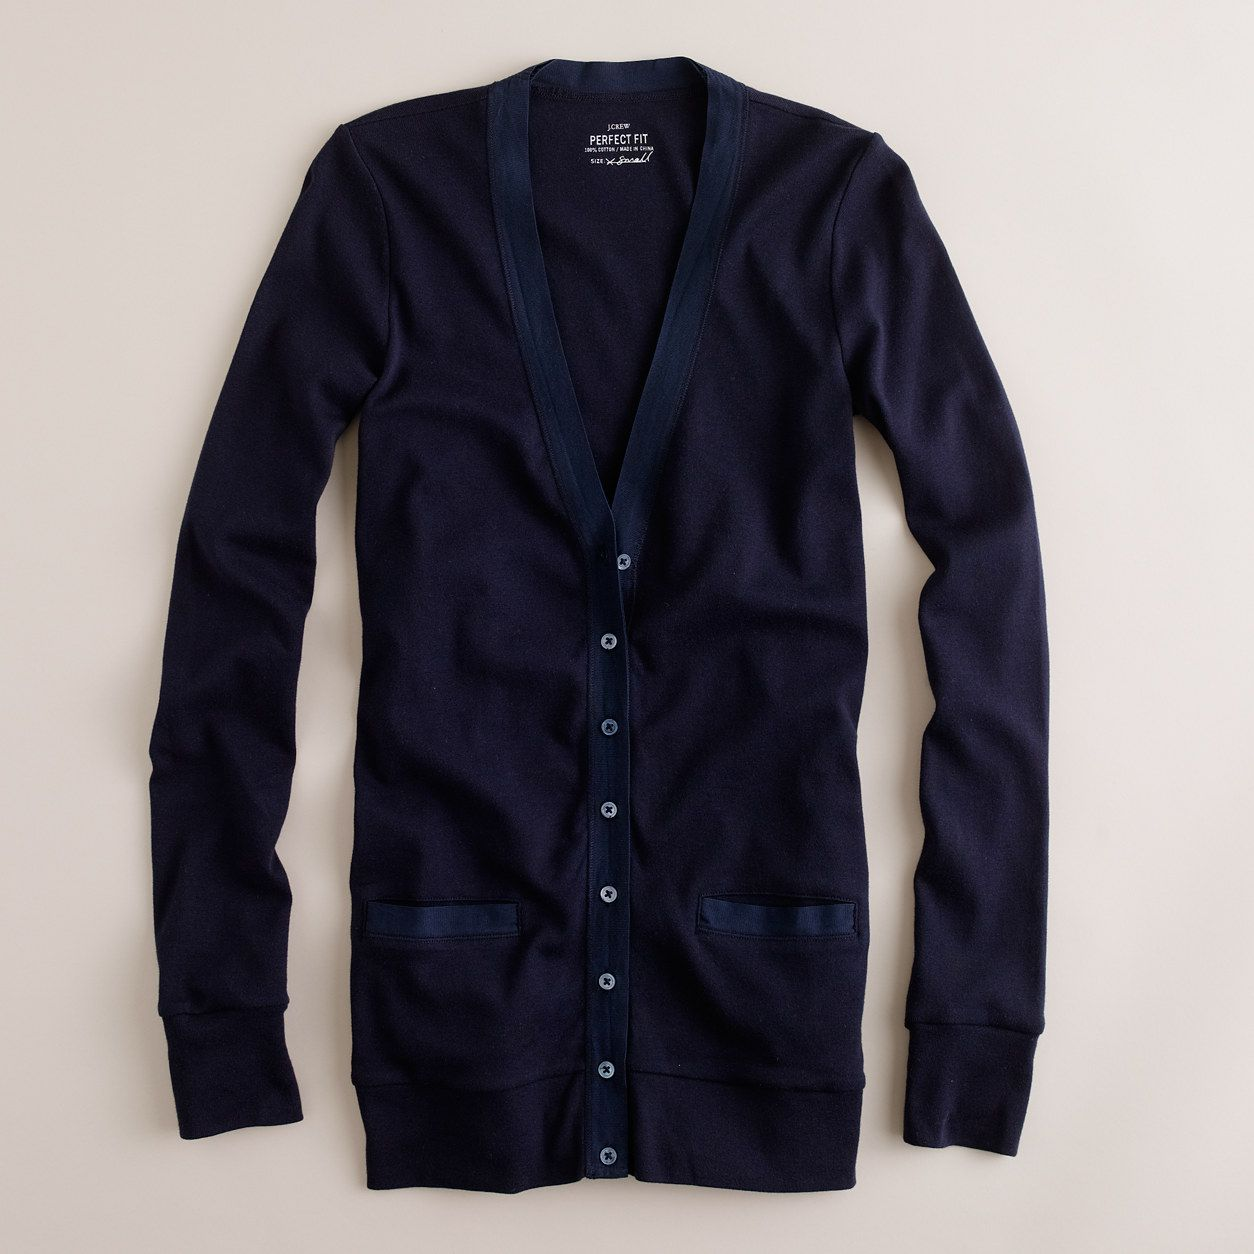 Perfect-fit mixed-tape cardigan - jackets & cardigans - Women's ...